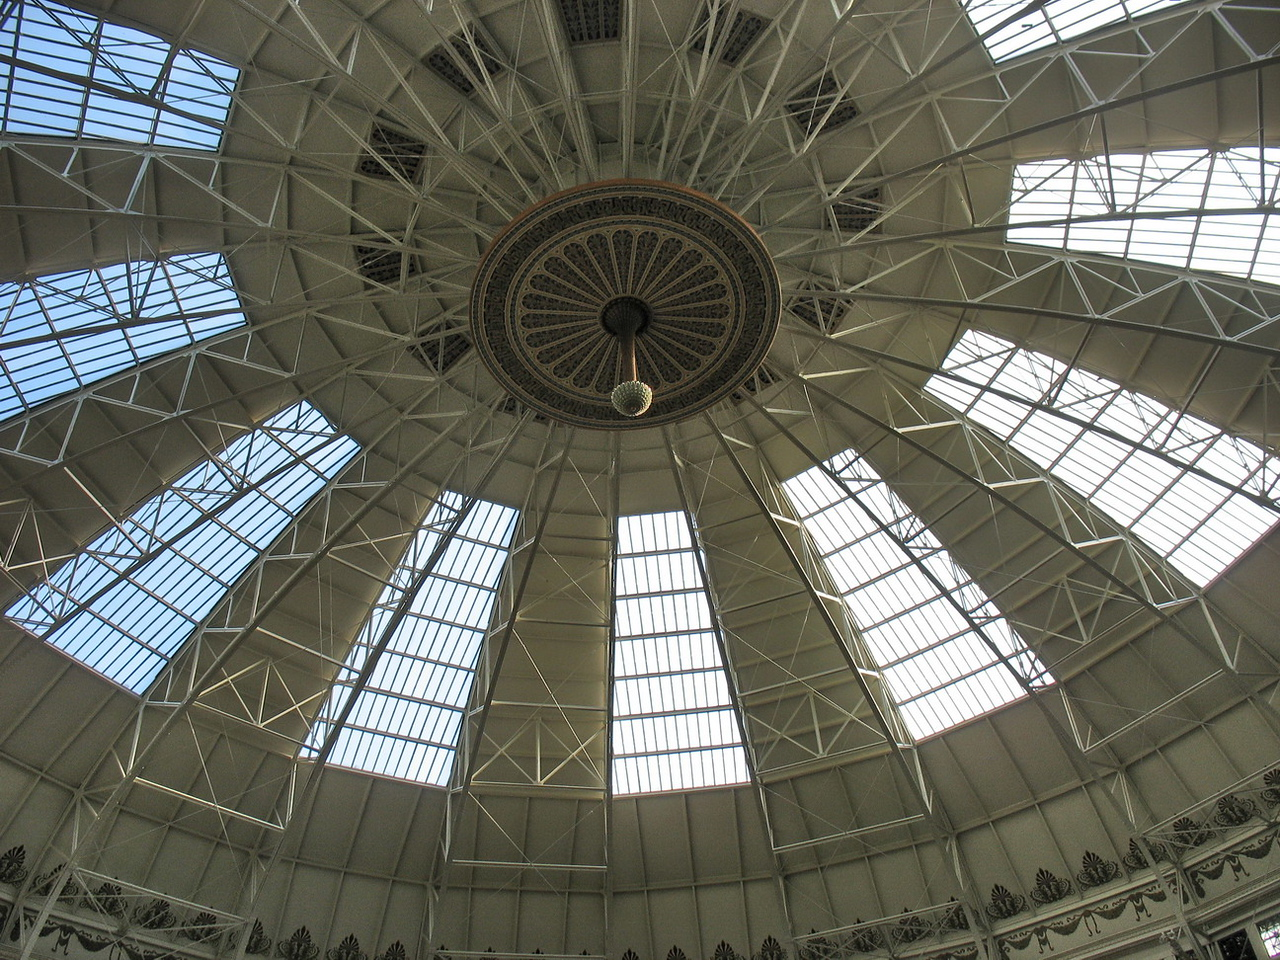 Looking up at the dome.